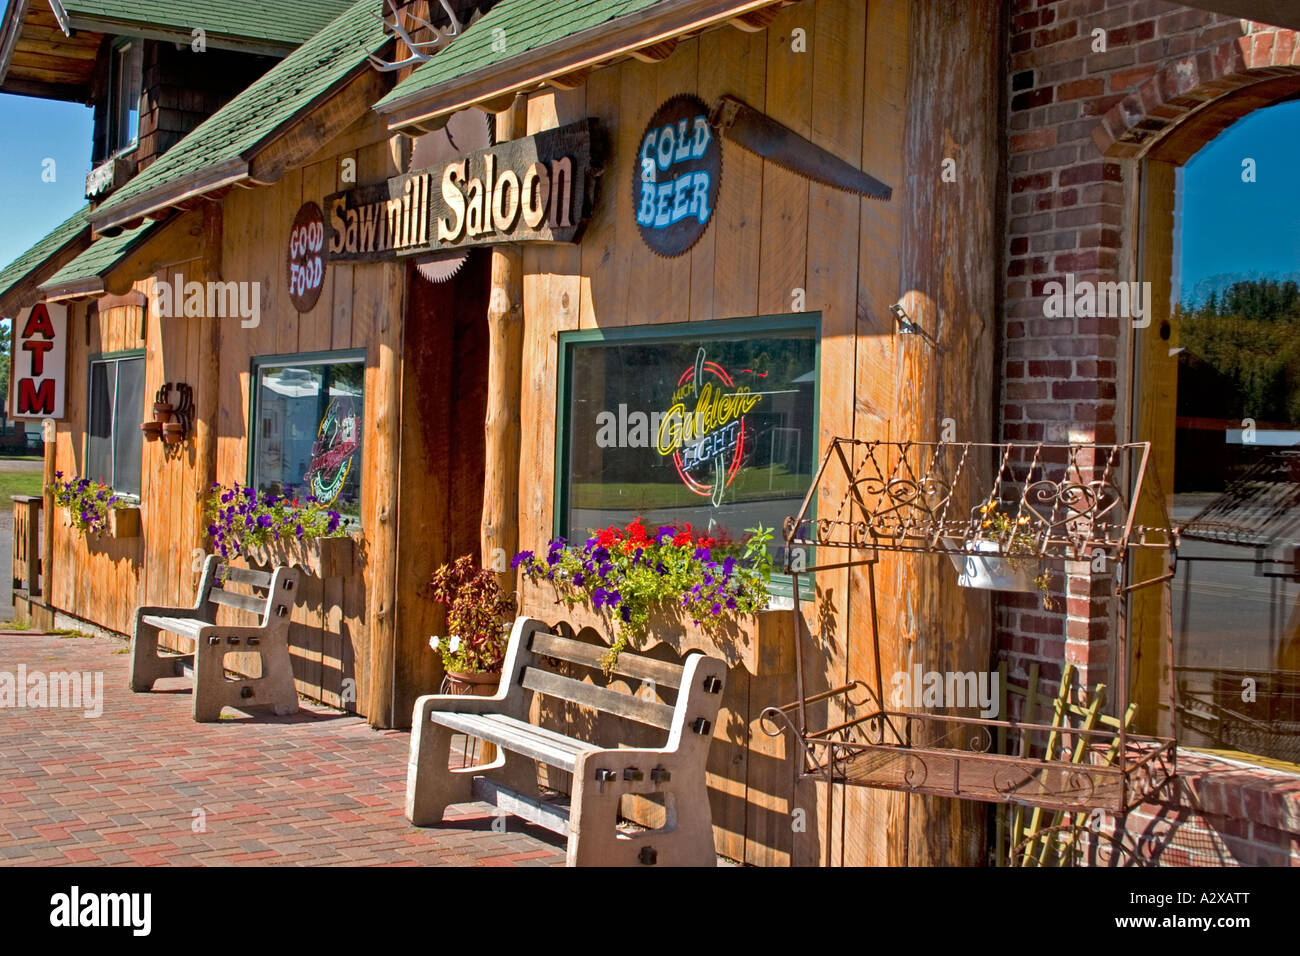 Sawmill Saloon where they have Martini hour every Friday night and waiting for Kurt Russell to show up. Seeley Wisconsin - Stock Image